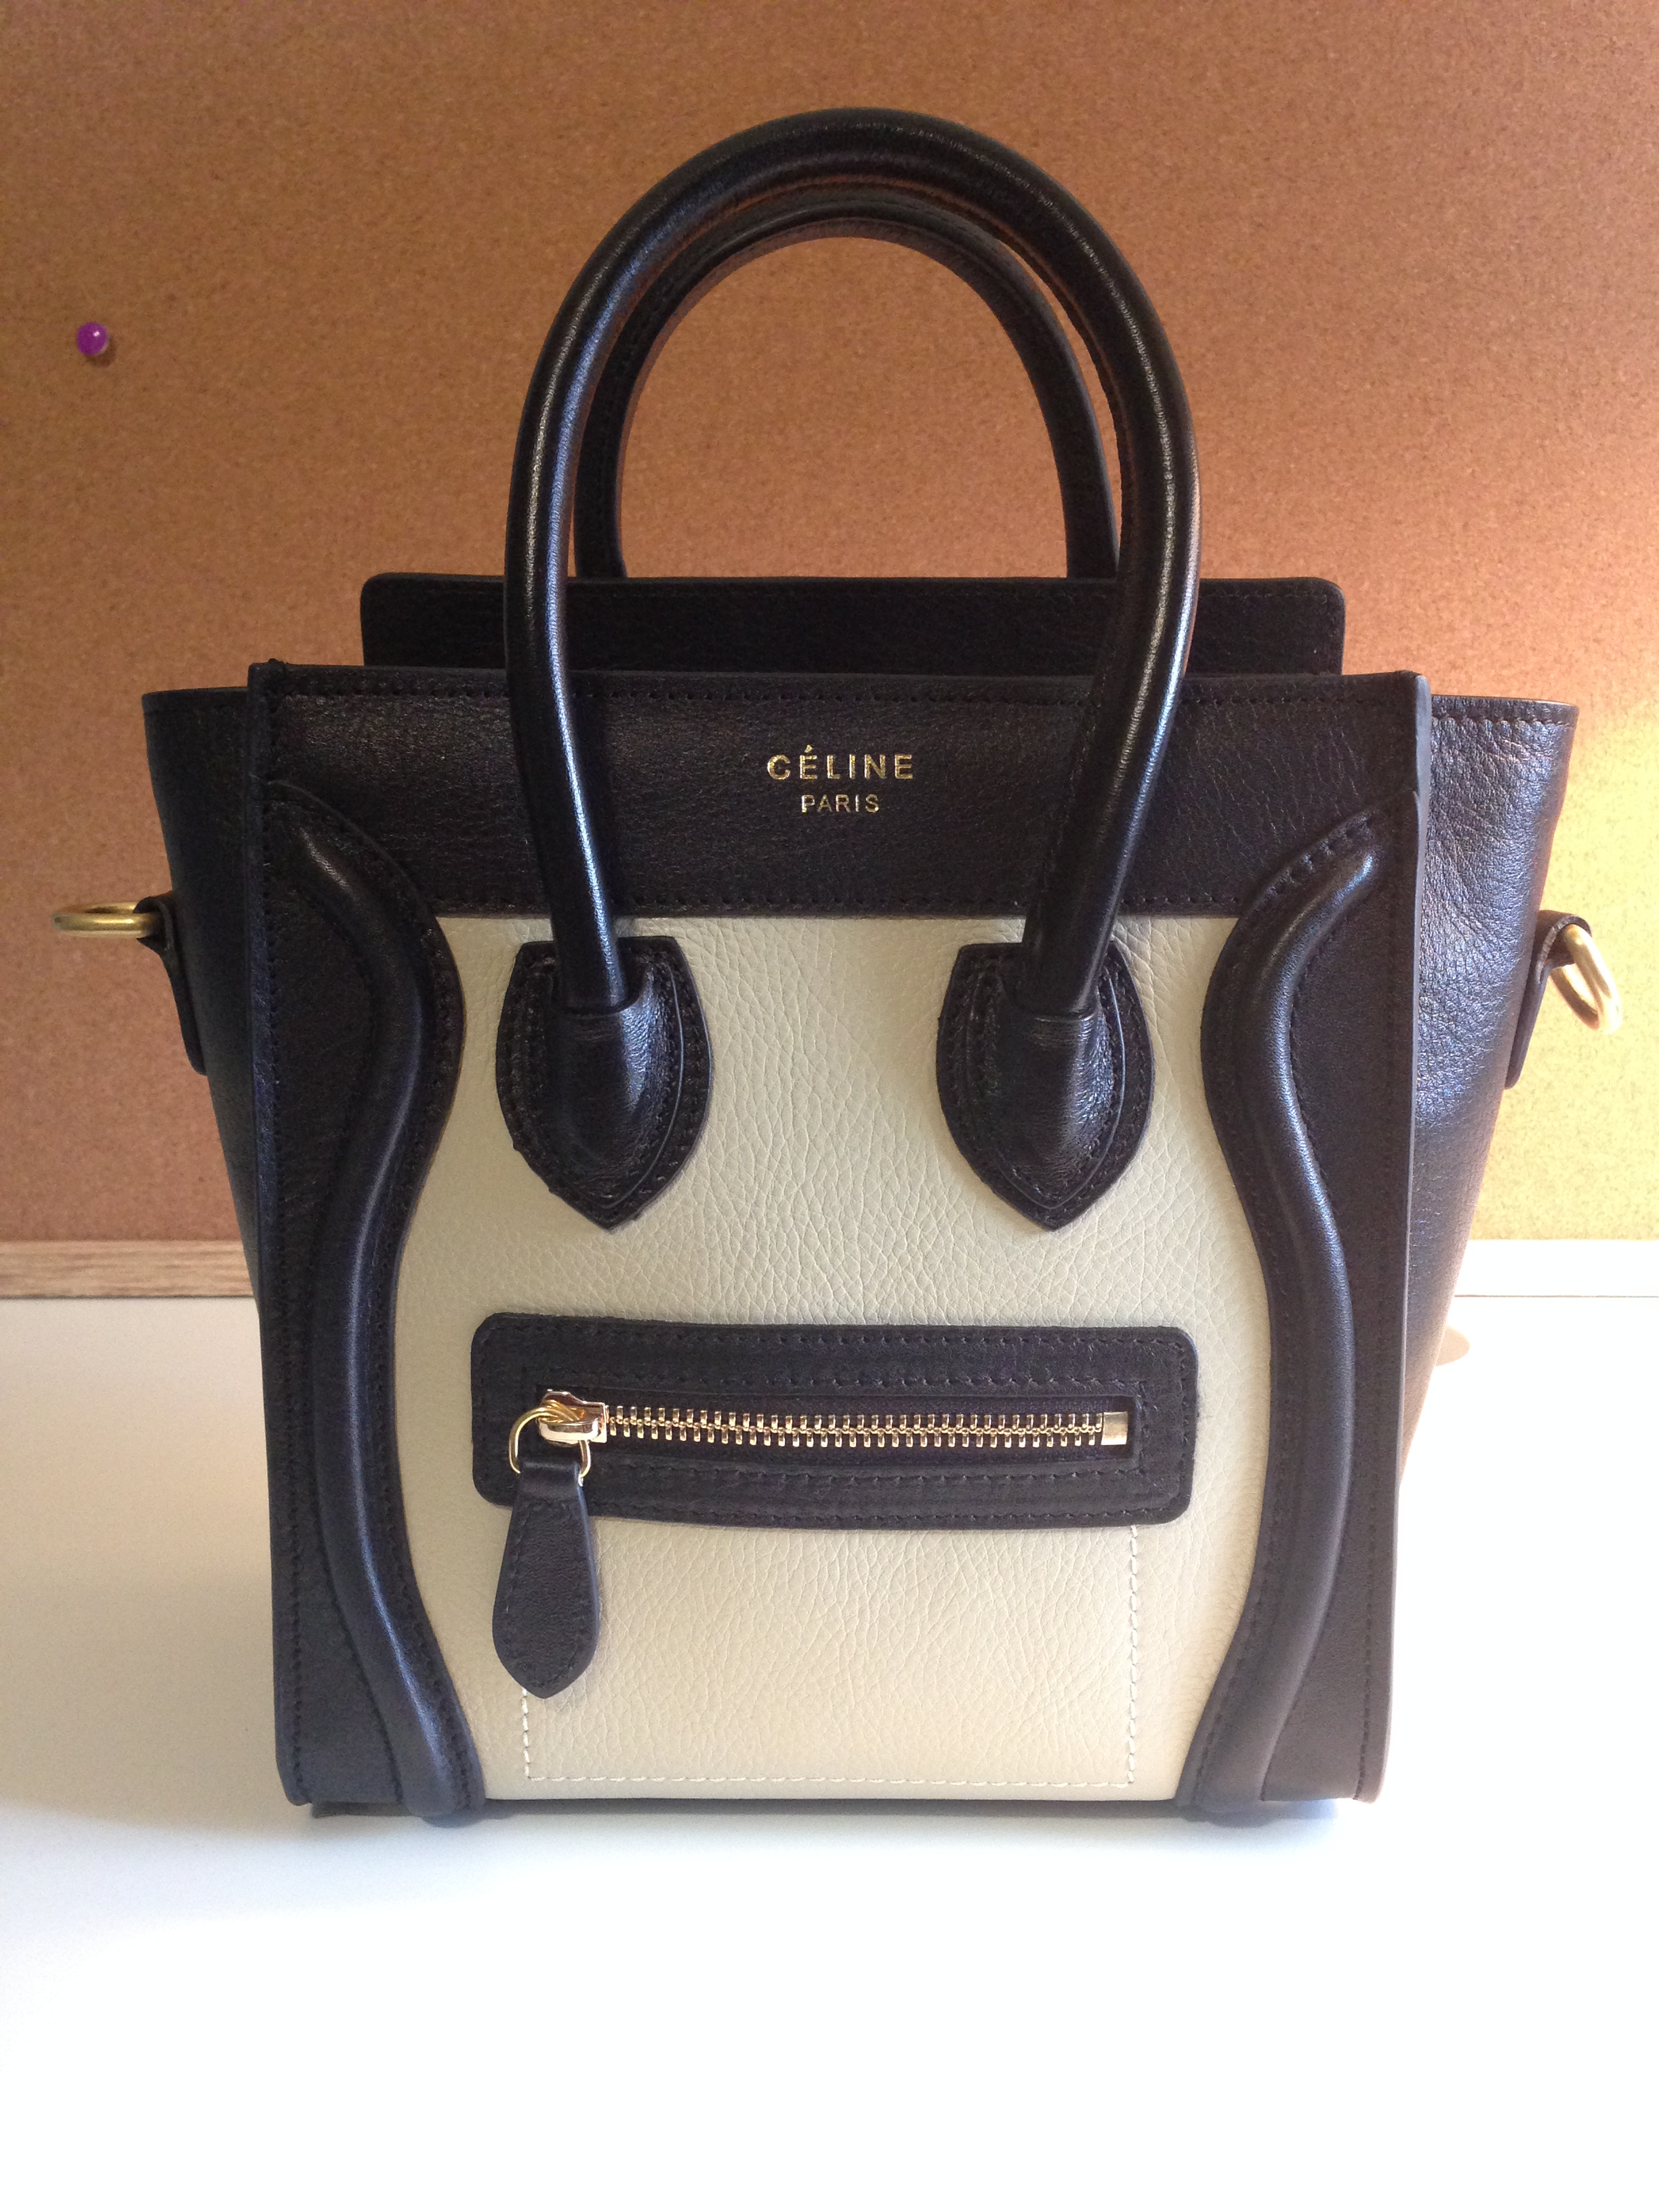 fake celine handbag - celine replica, celine handbag mini